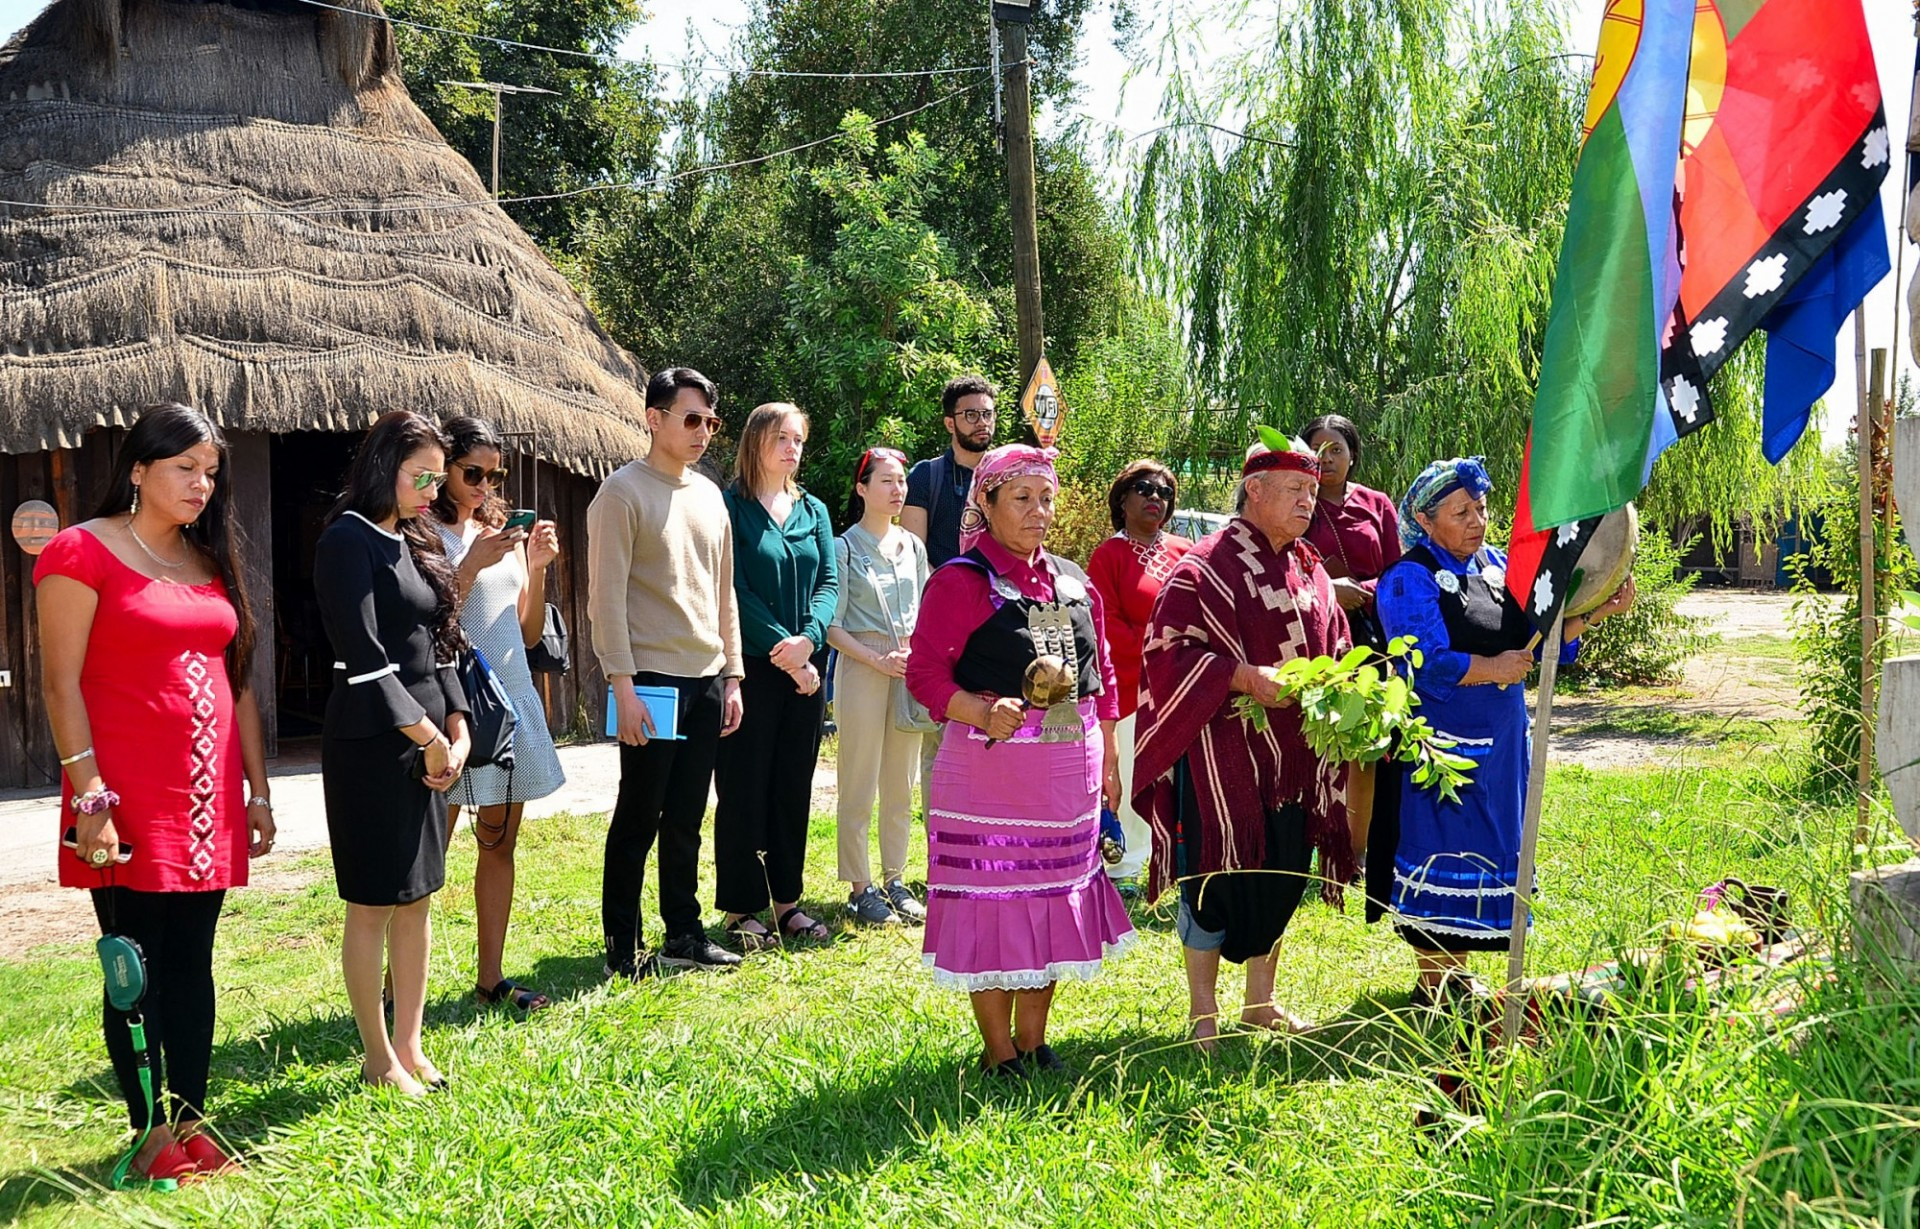 The group at the Mapuche community